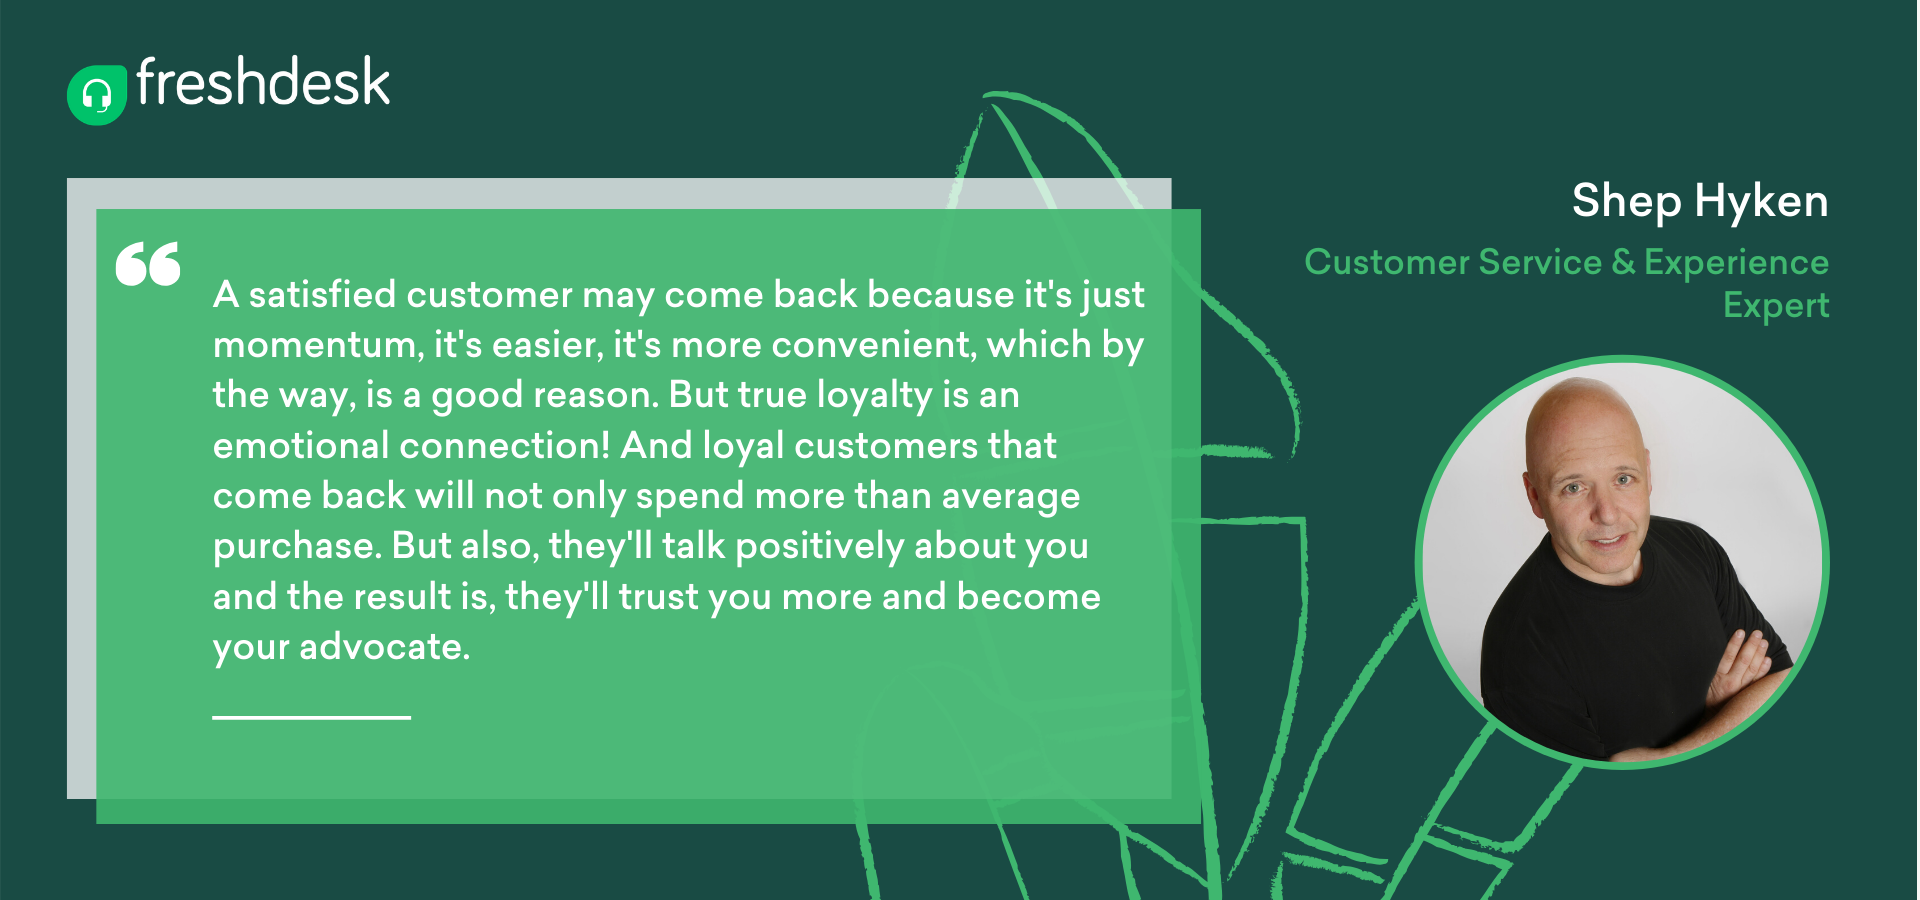 Shey Hyken on loyal customers for how to build a custoemr community